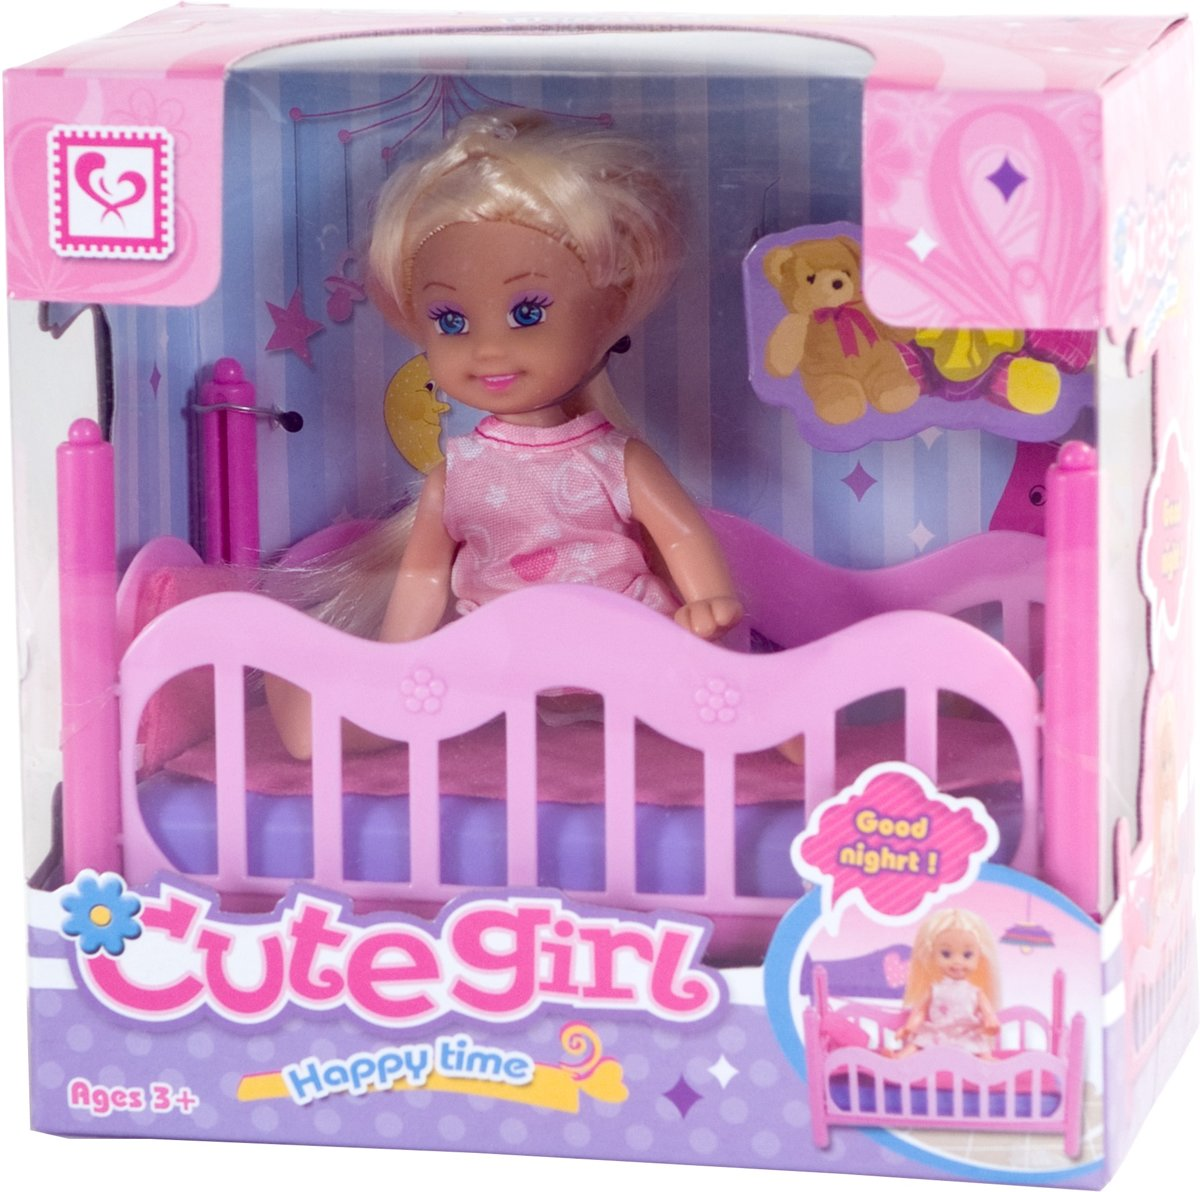 Poppen | Mini Poppen - Cute Girl Slaap Speelset